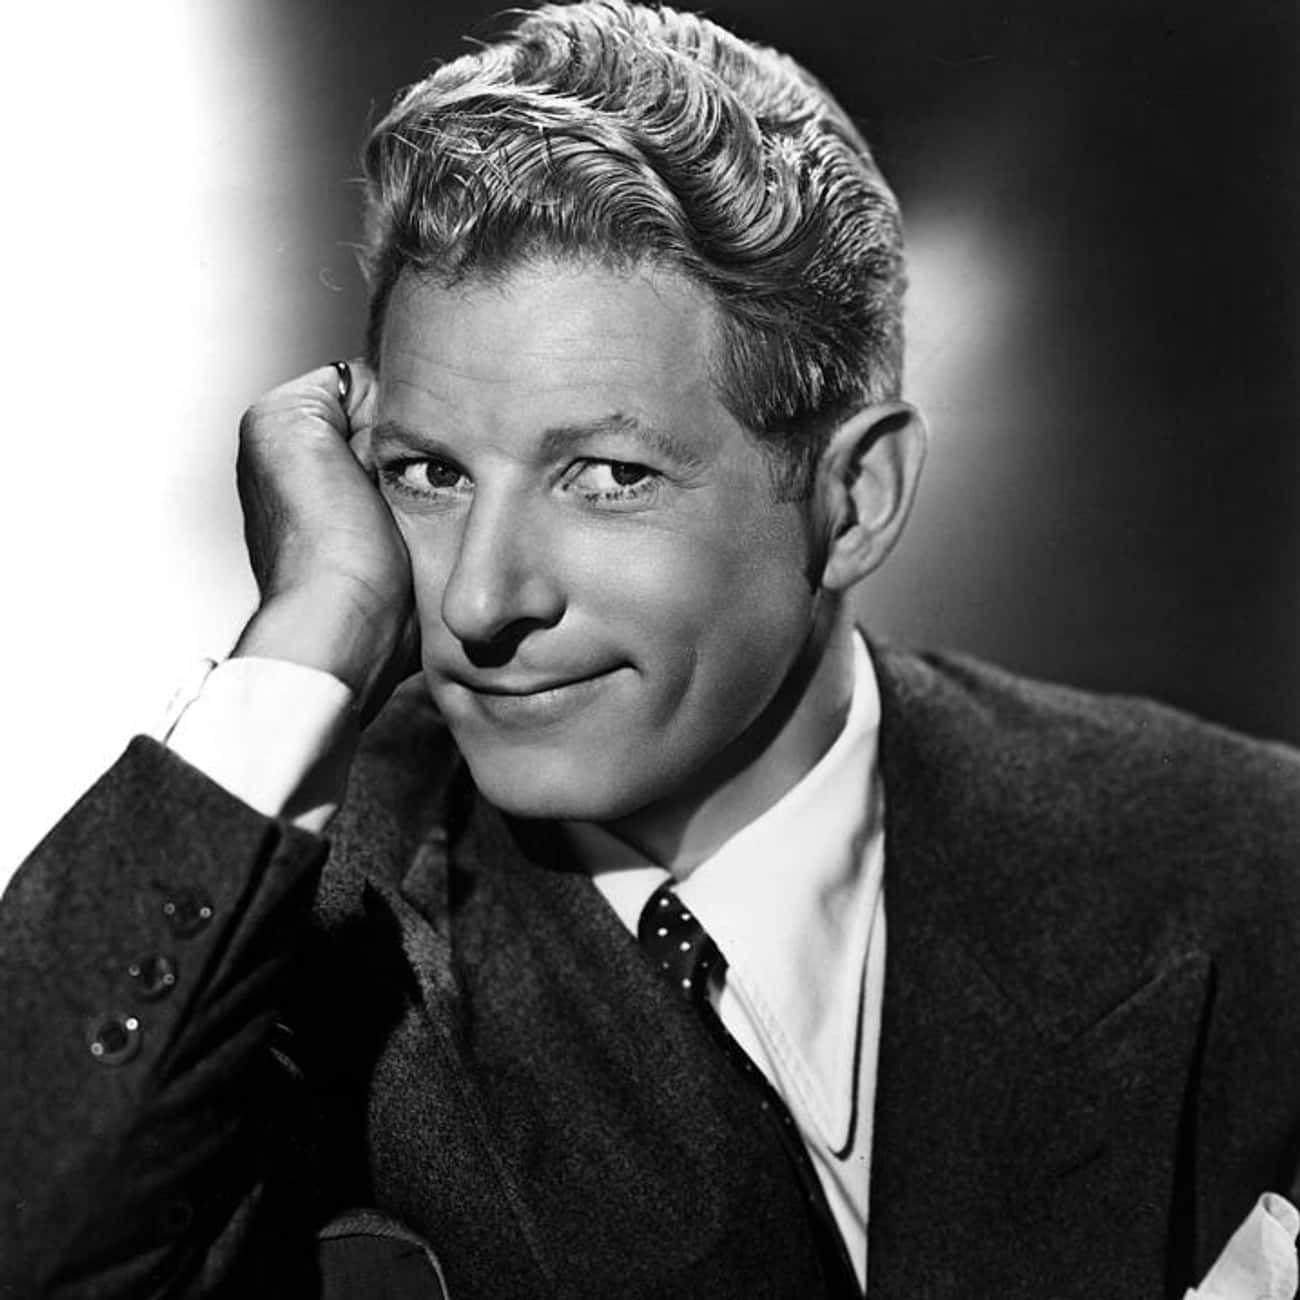 Danny Kaye is listed (or ranked) 4 on the list Famous People Who Died of Hepatitis